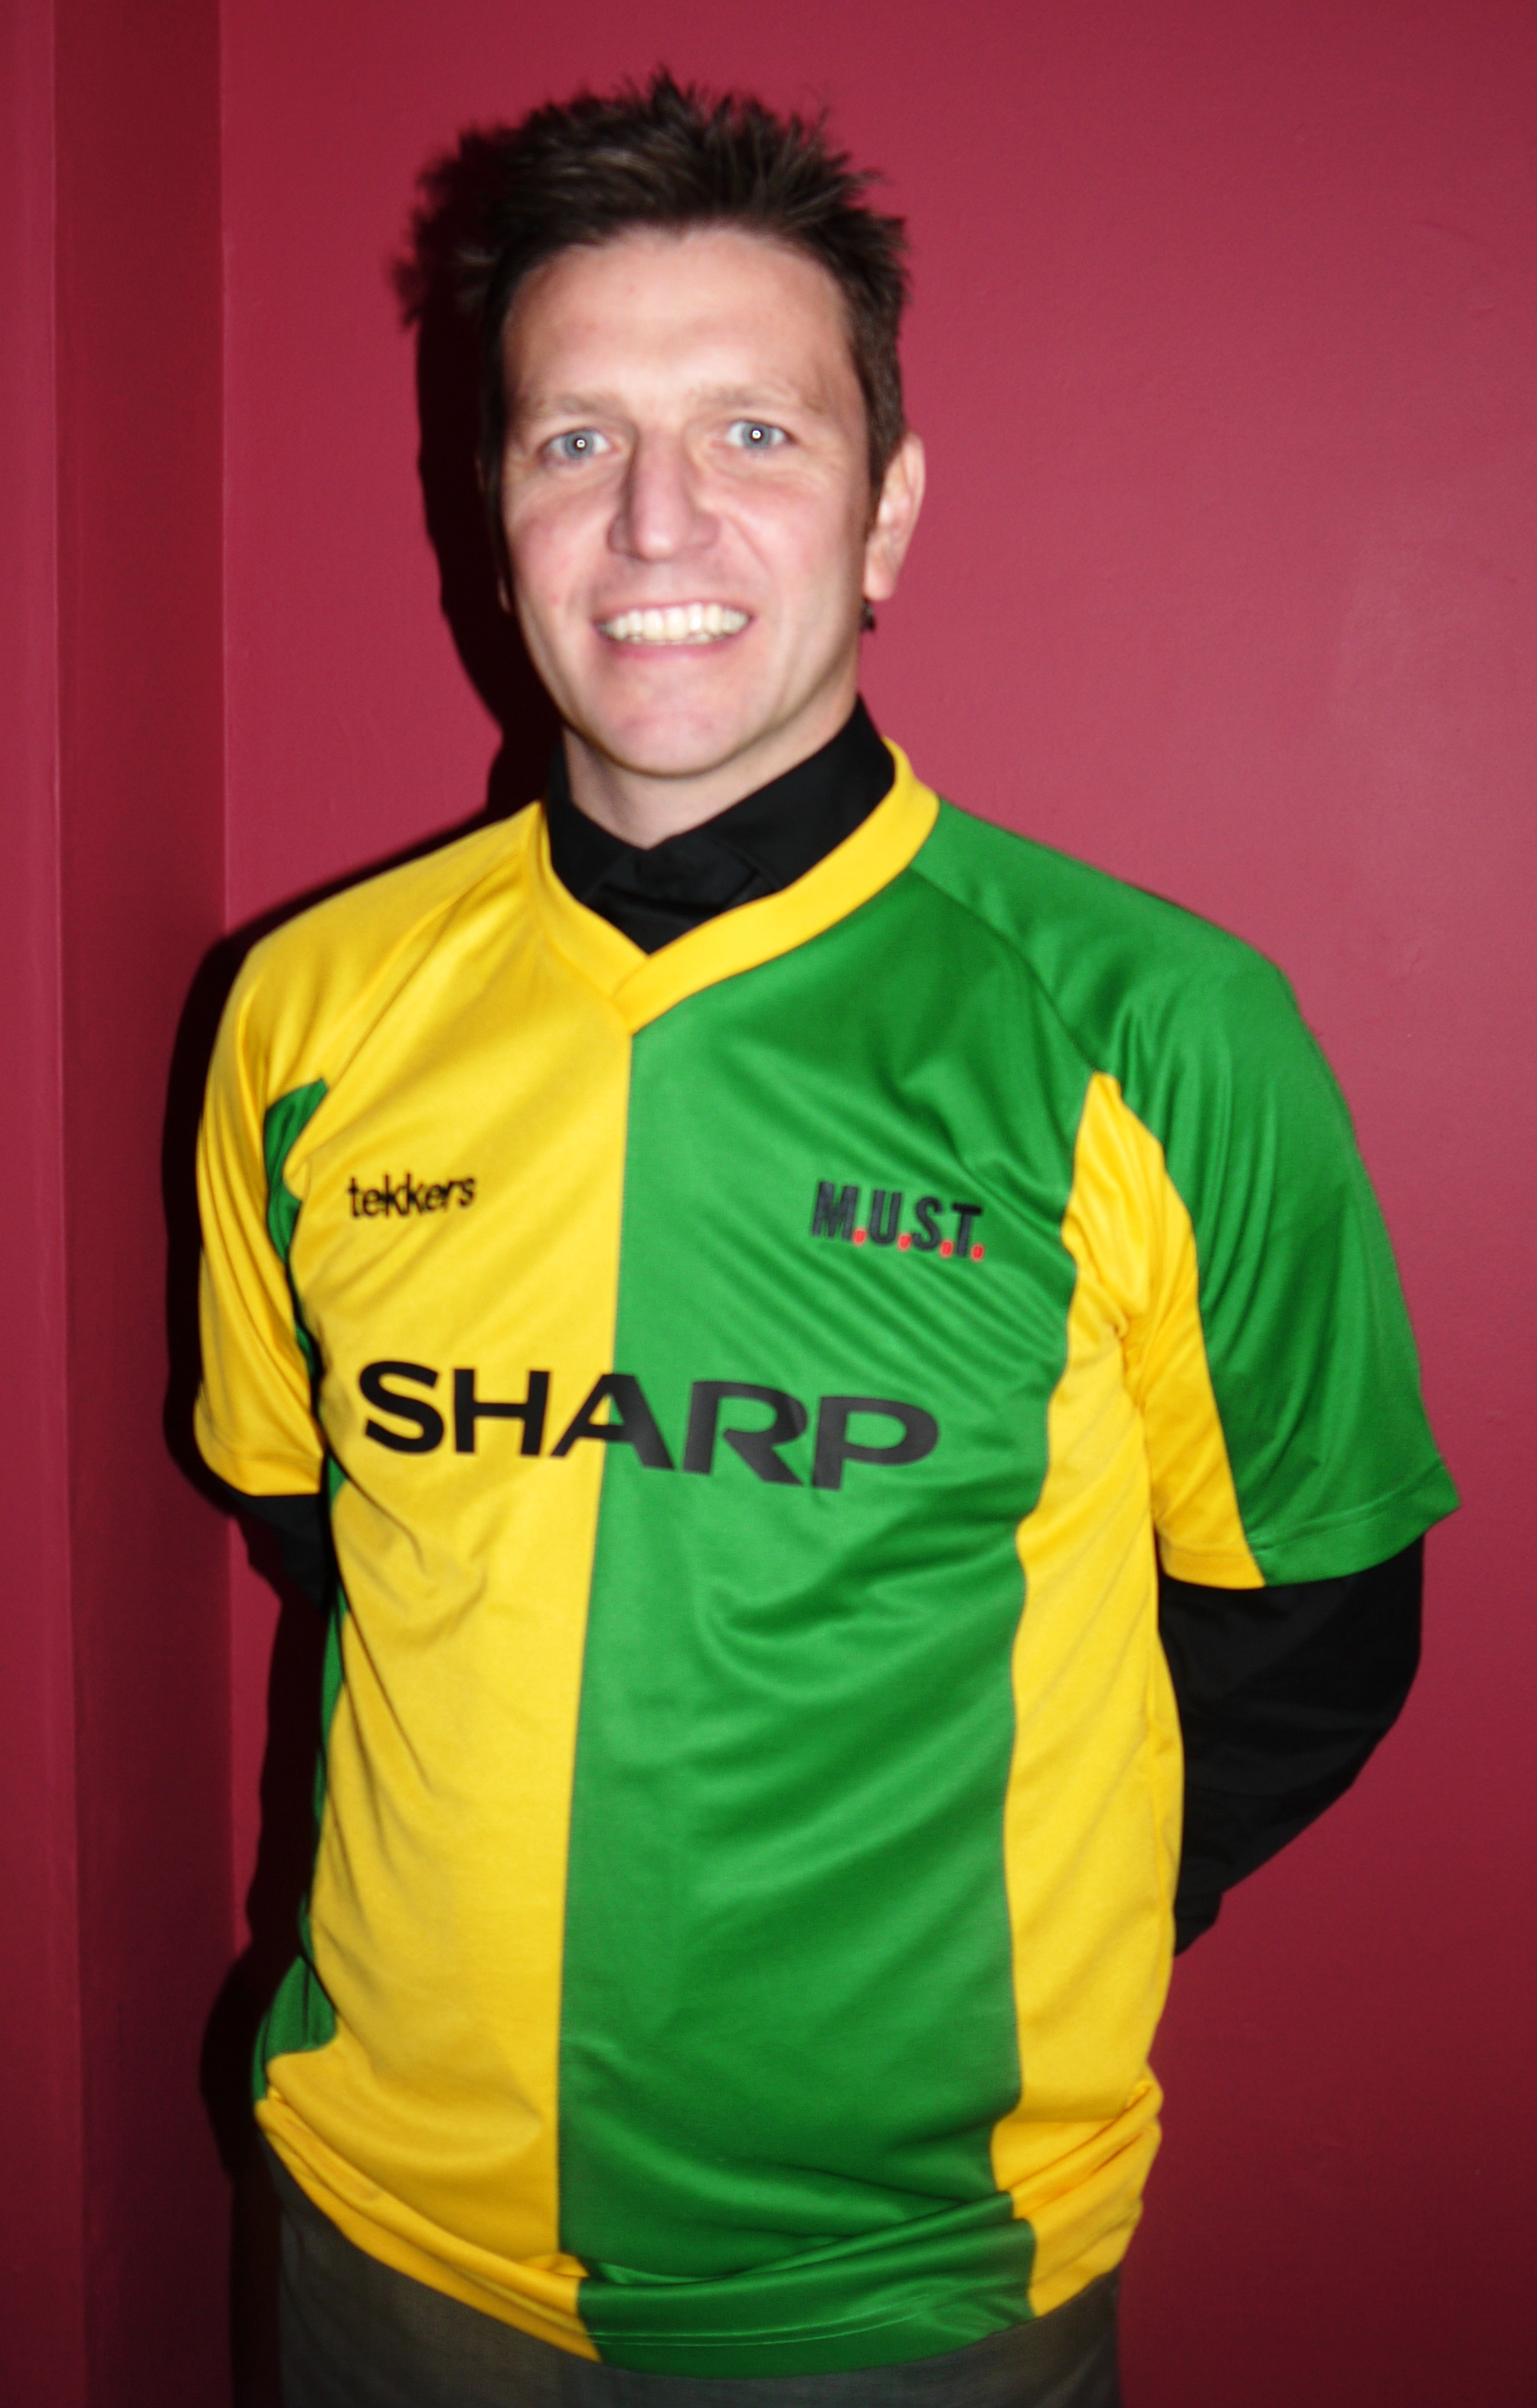 364ea8c7abf Man Utd Green And Yellow Shirt For Sale - DREAMWORKS